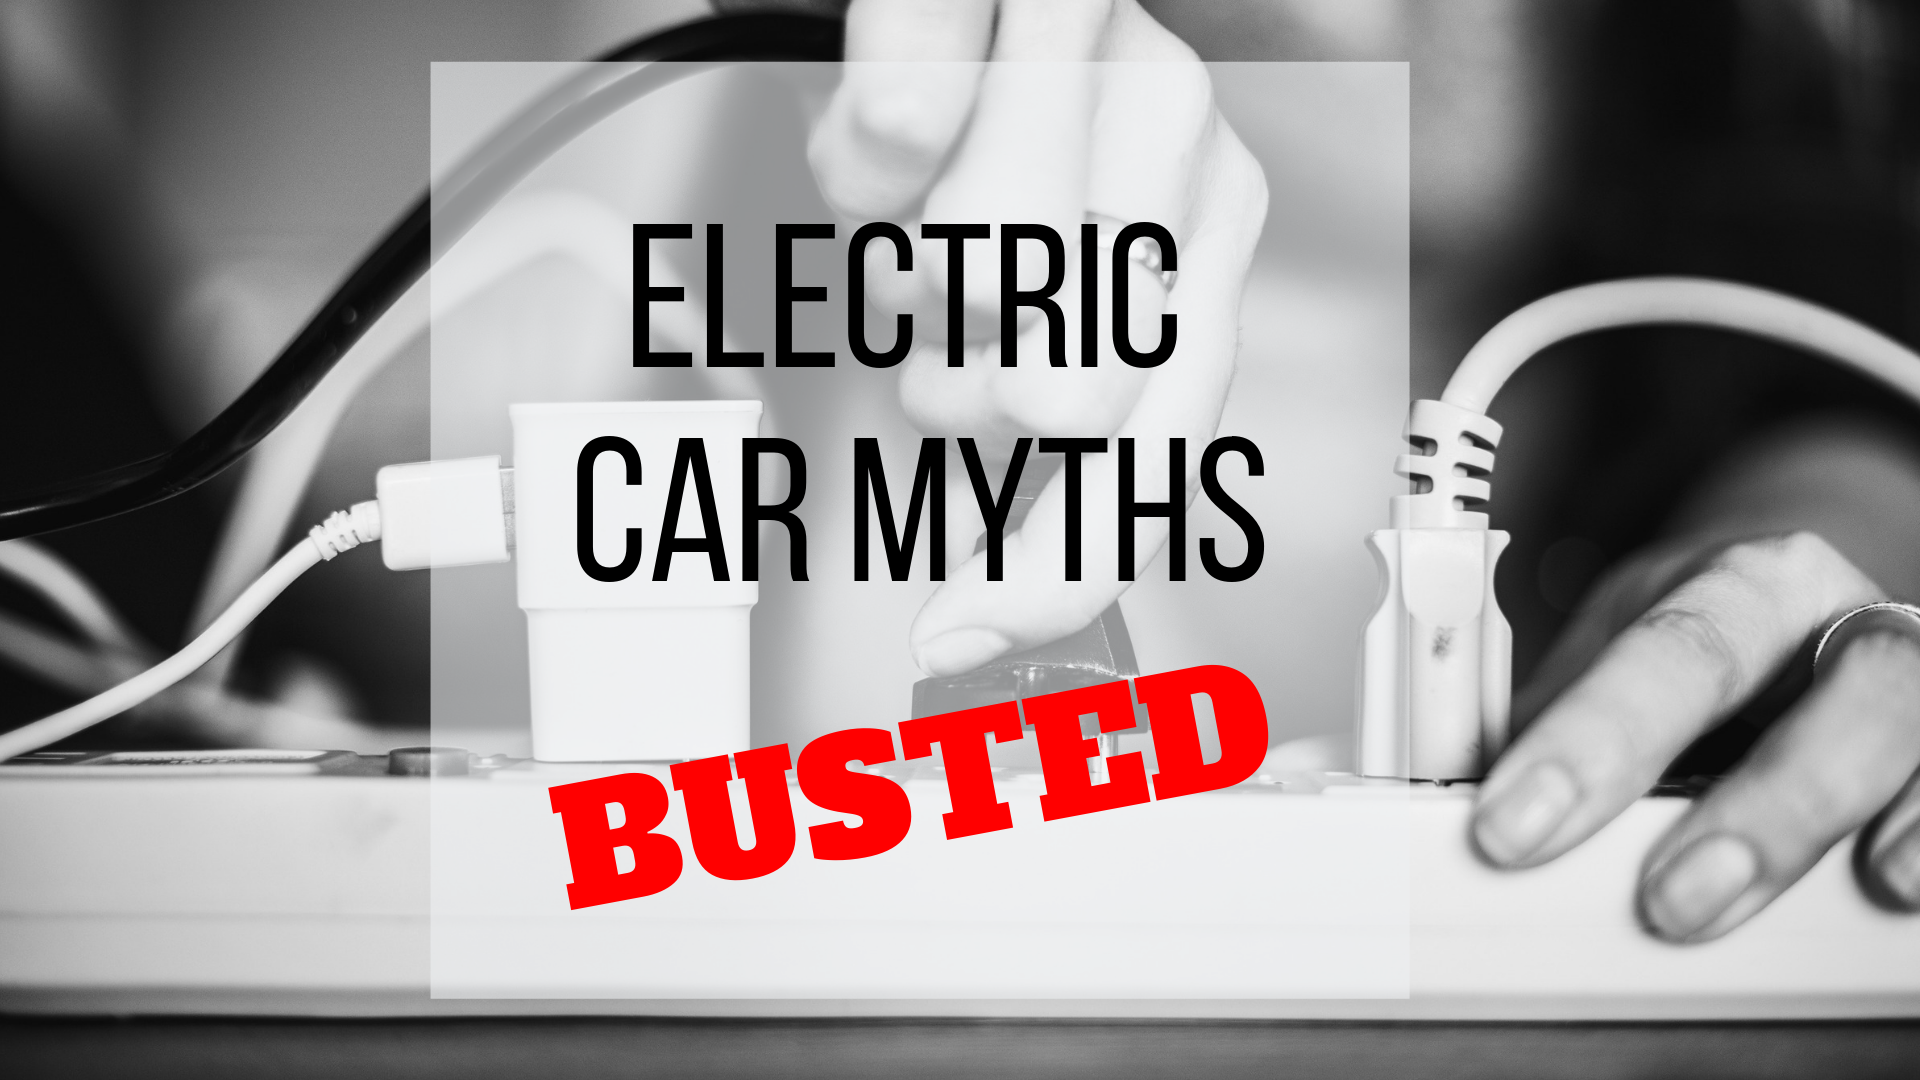 10 Electric Car Myths, Busted